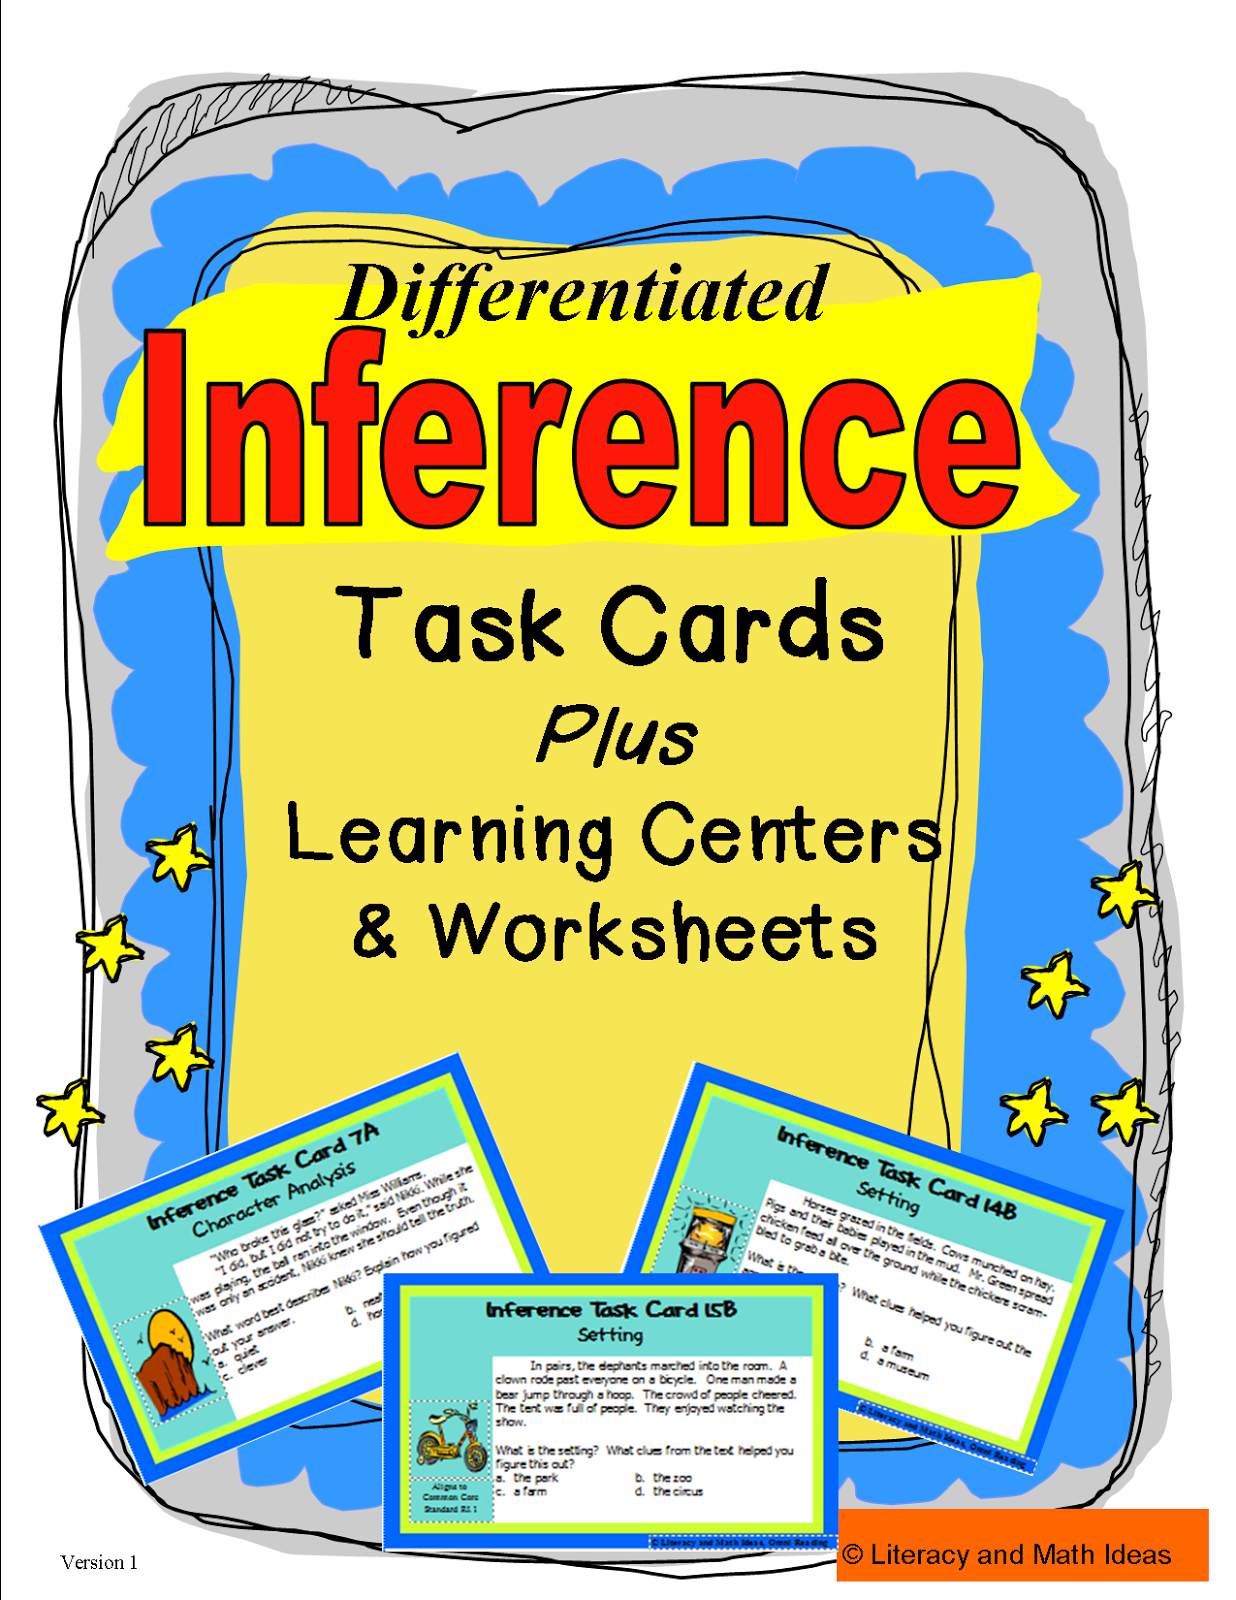 Differentiated Inference Task Cards The Task Cards Are Organized By The Types Of Inferences That Students Make While Inference Task Cards Inference Task Cards [ 1600 x 1236 Pixel ]